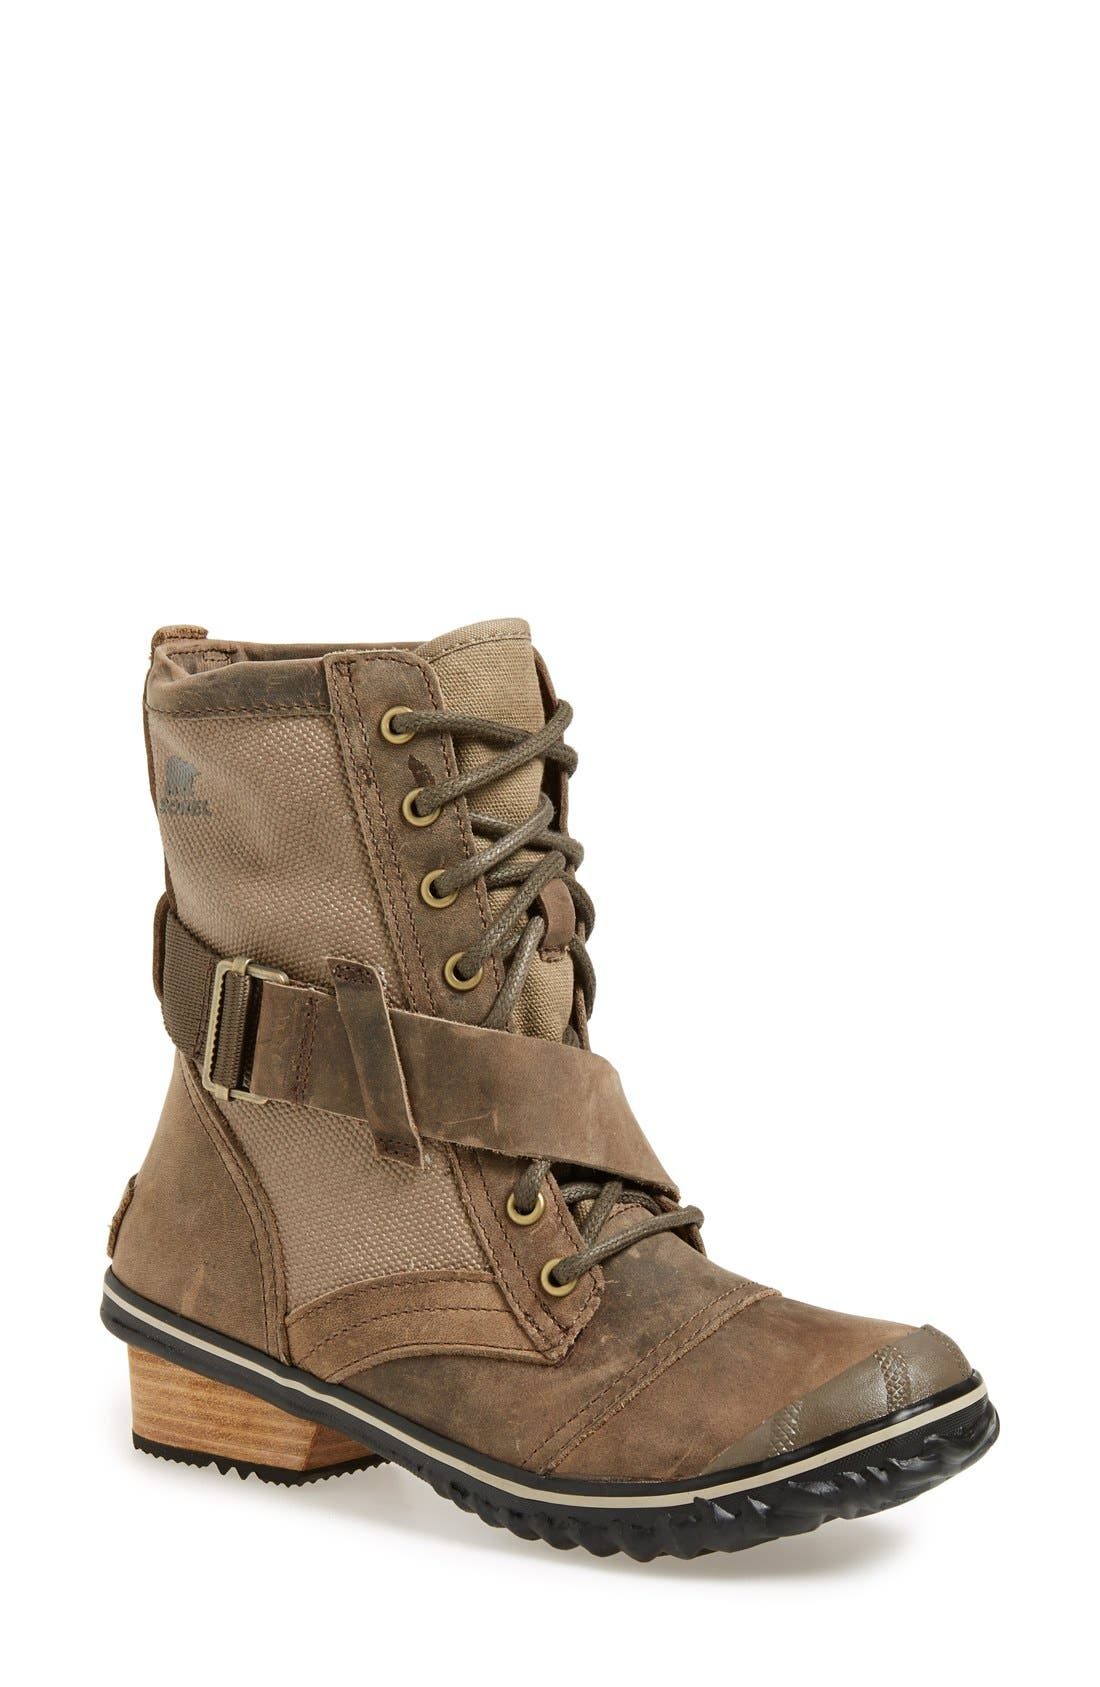 Main Image - SOREL 'Slimboot™' Waterproof Lace-Up Boot (Women)